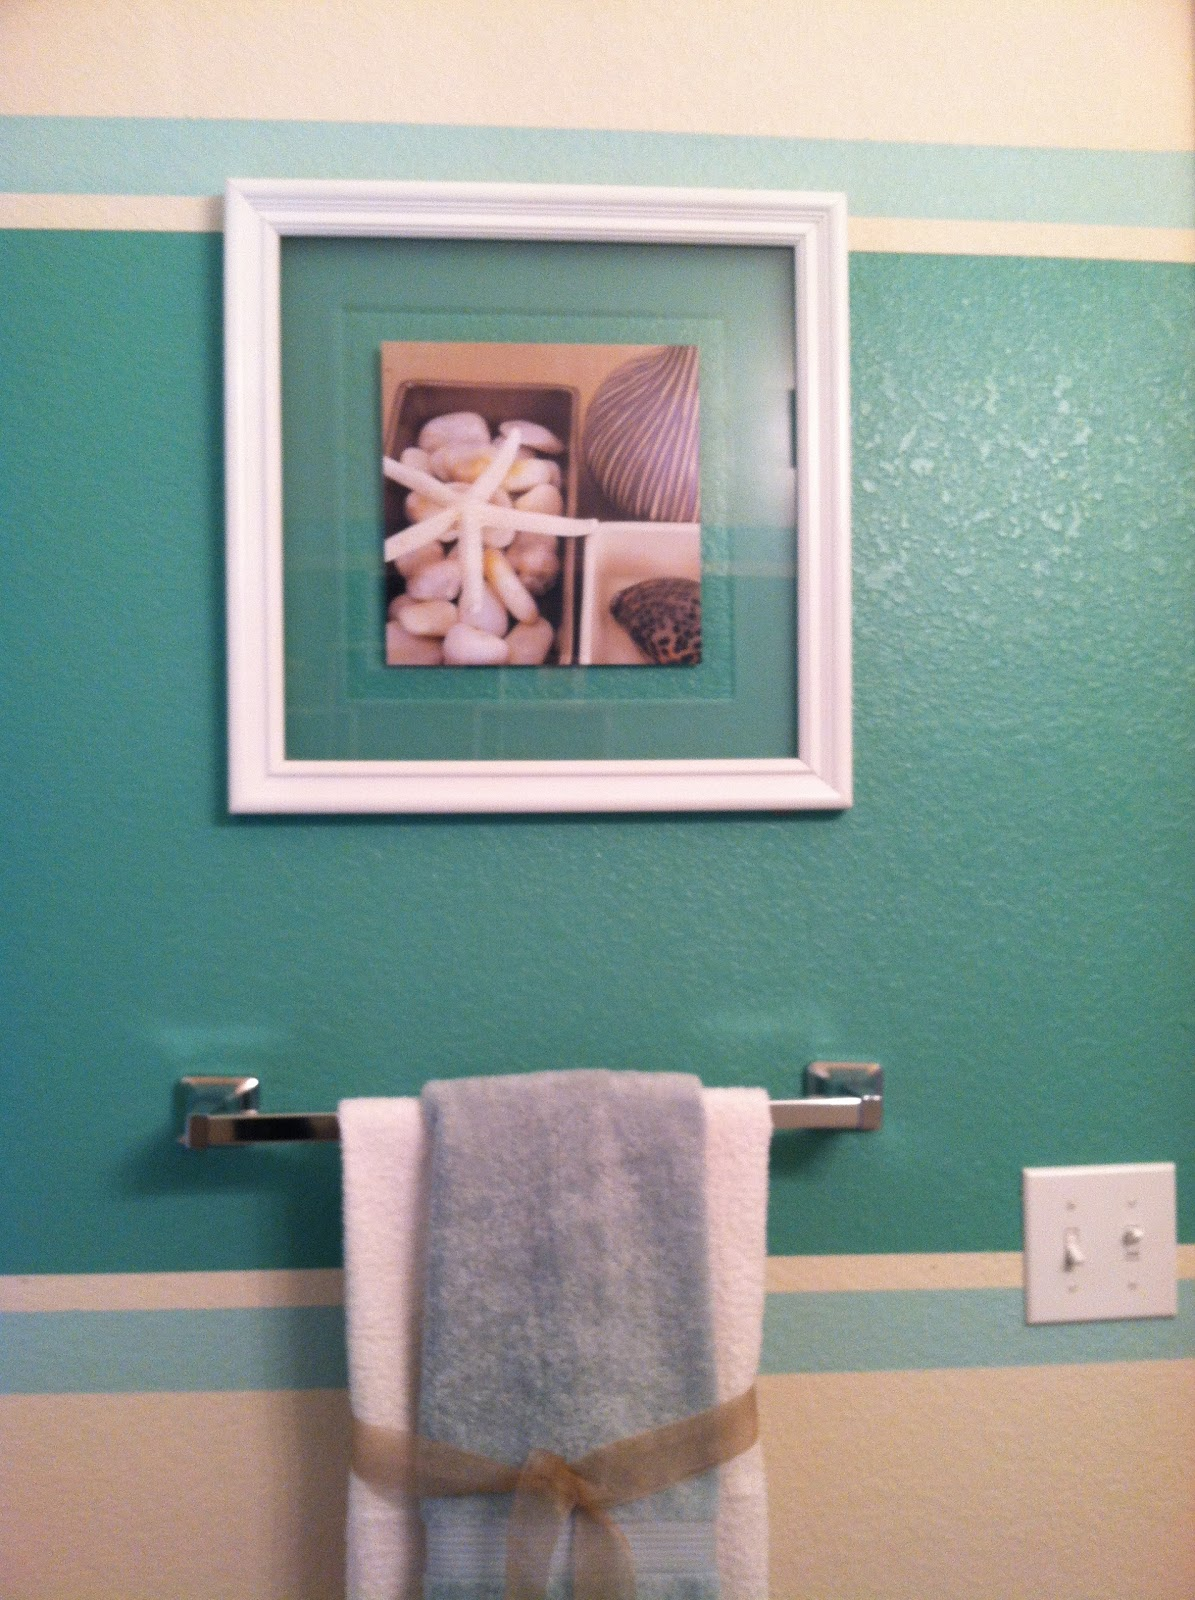 Beauty And The Budget Home Decor Bathroom Series Part 1